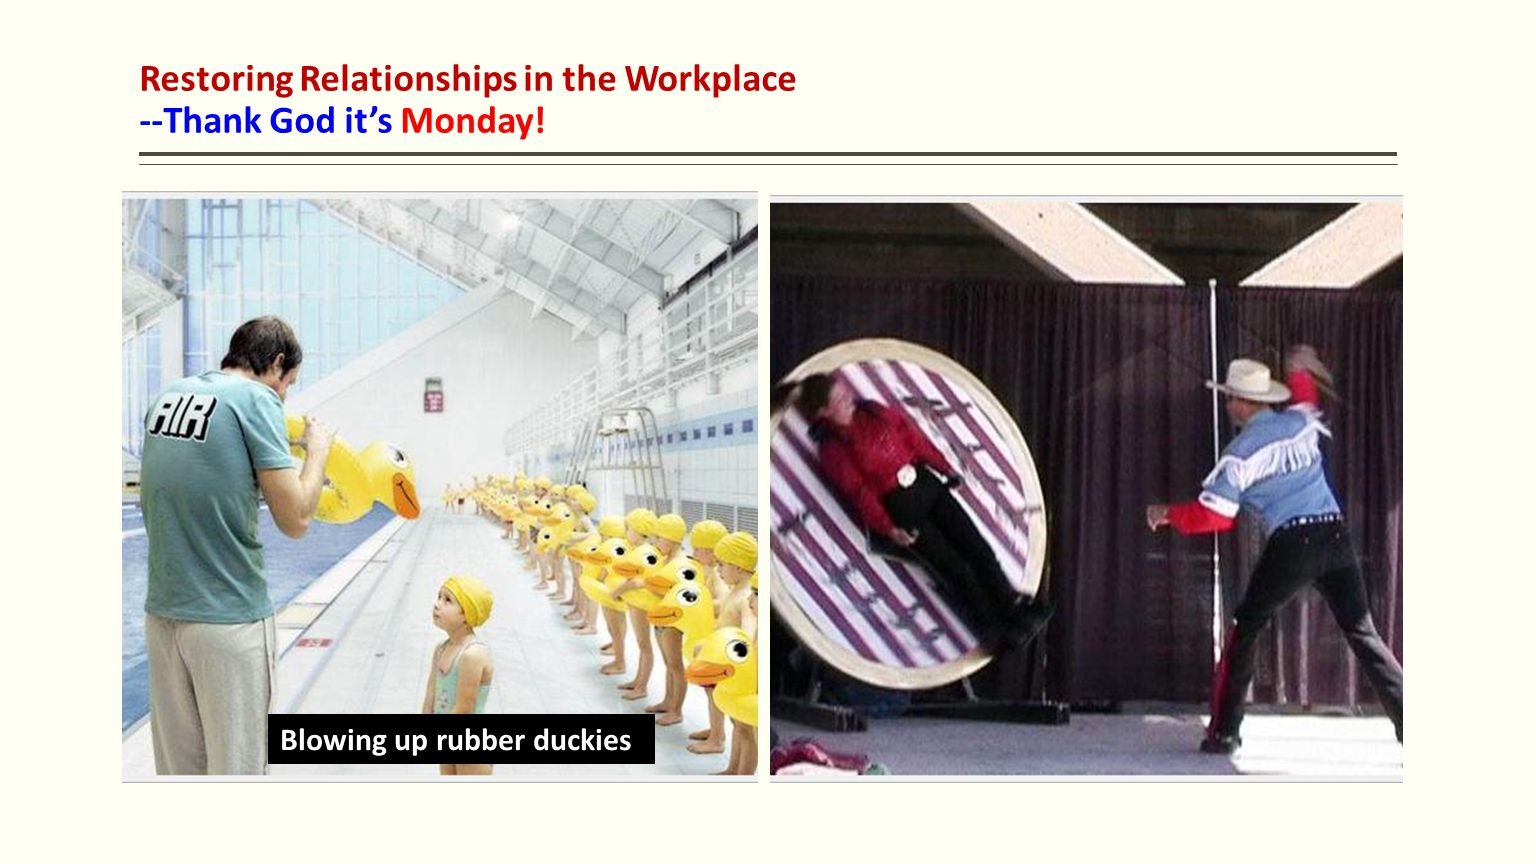 Restoring Relationships in the Workplace --Thank God it's Monday! Blowing up rubber duckies